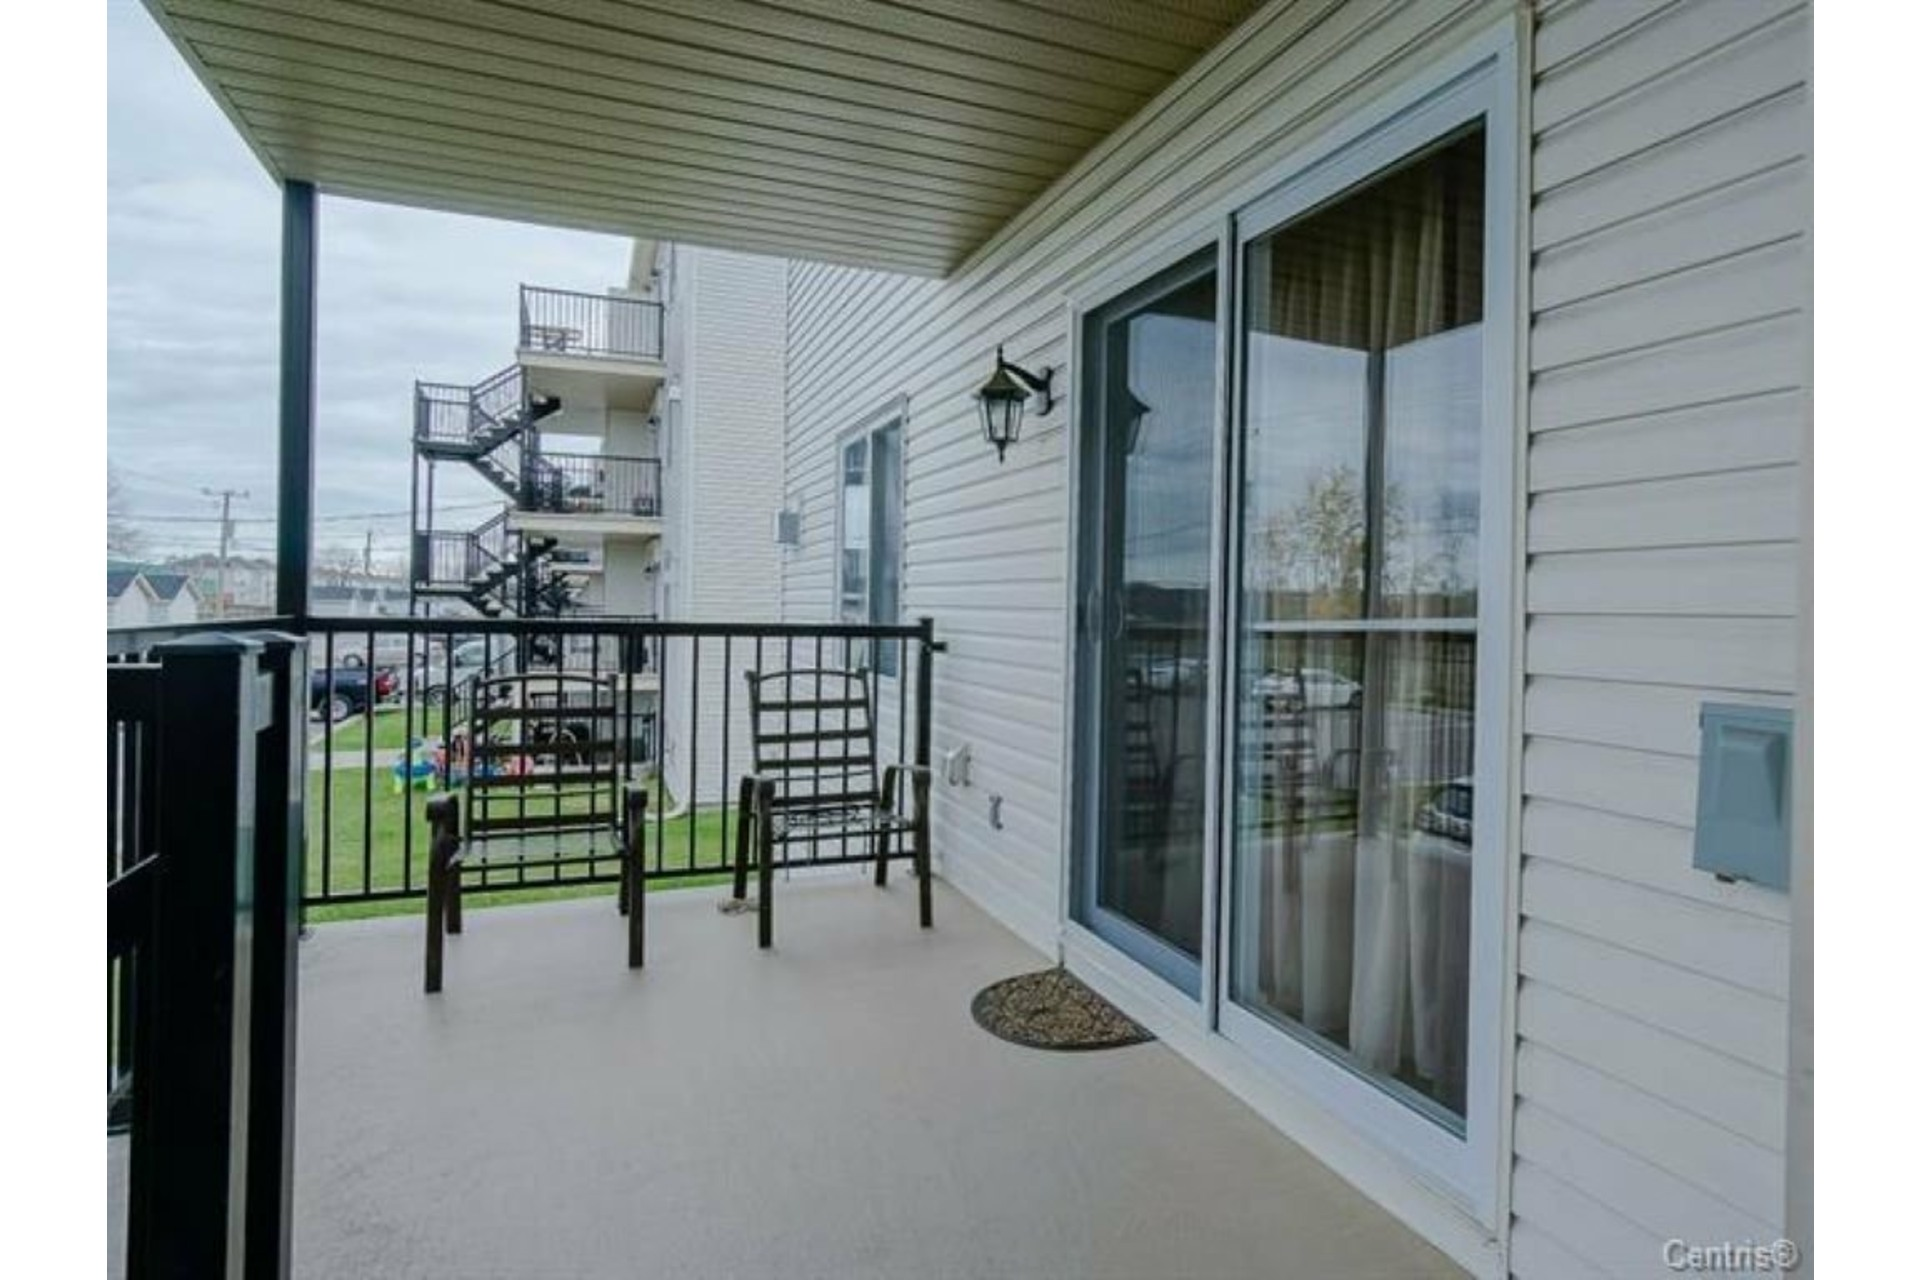 image 11 - Apartment For rent Vaudreuil-Dorion - 7 rooms